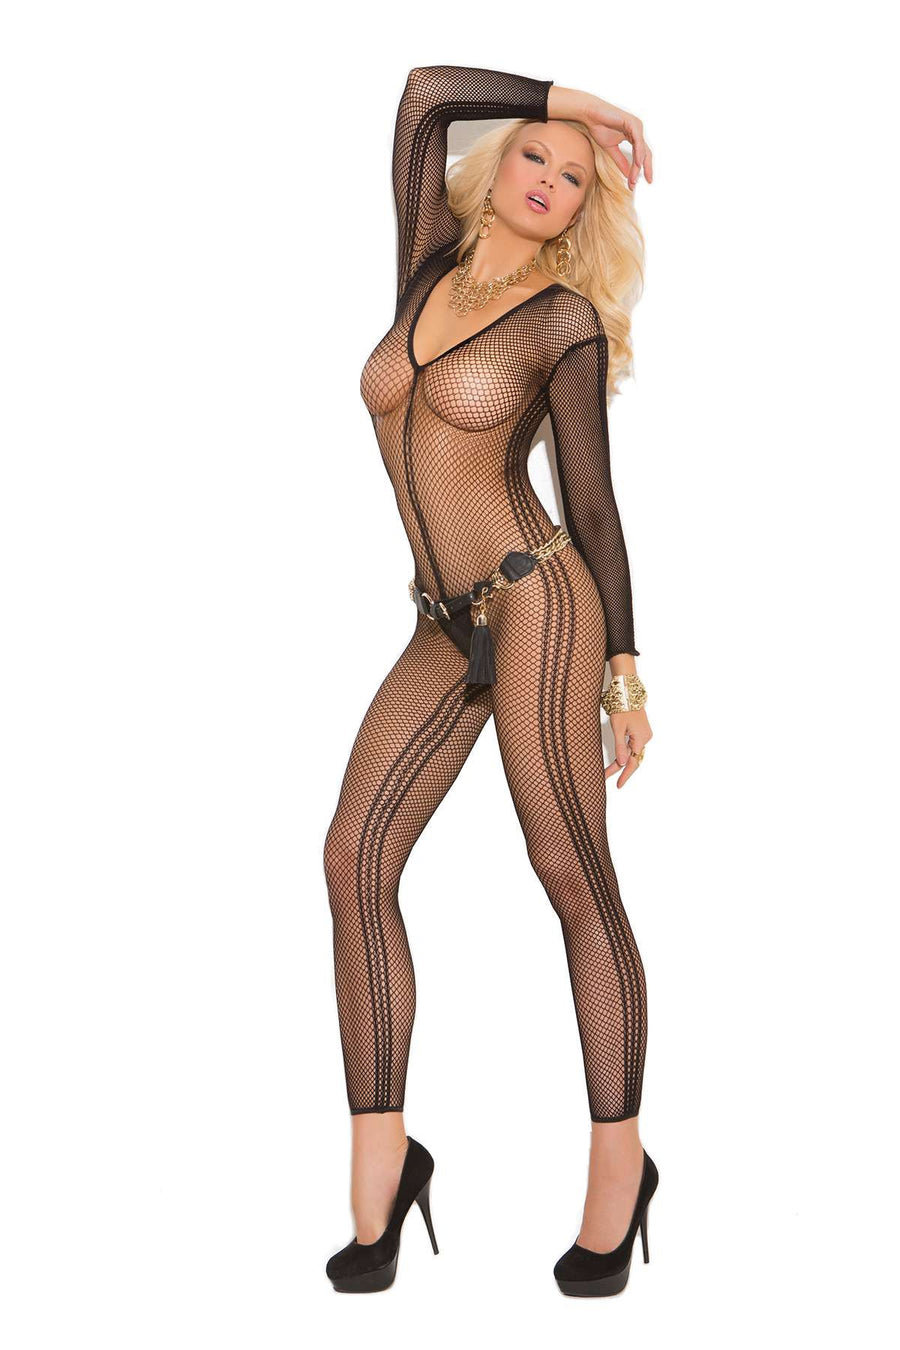 Deep V long sleeve fishnet and pothole bodystocking with open crotch  Black